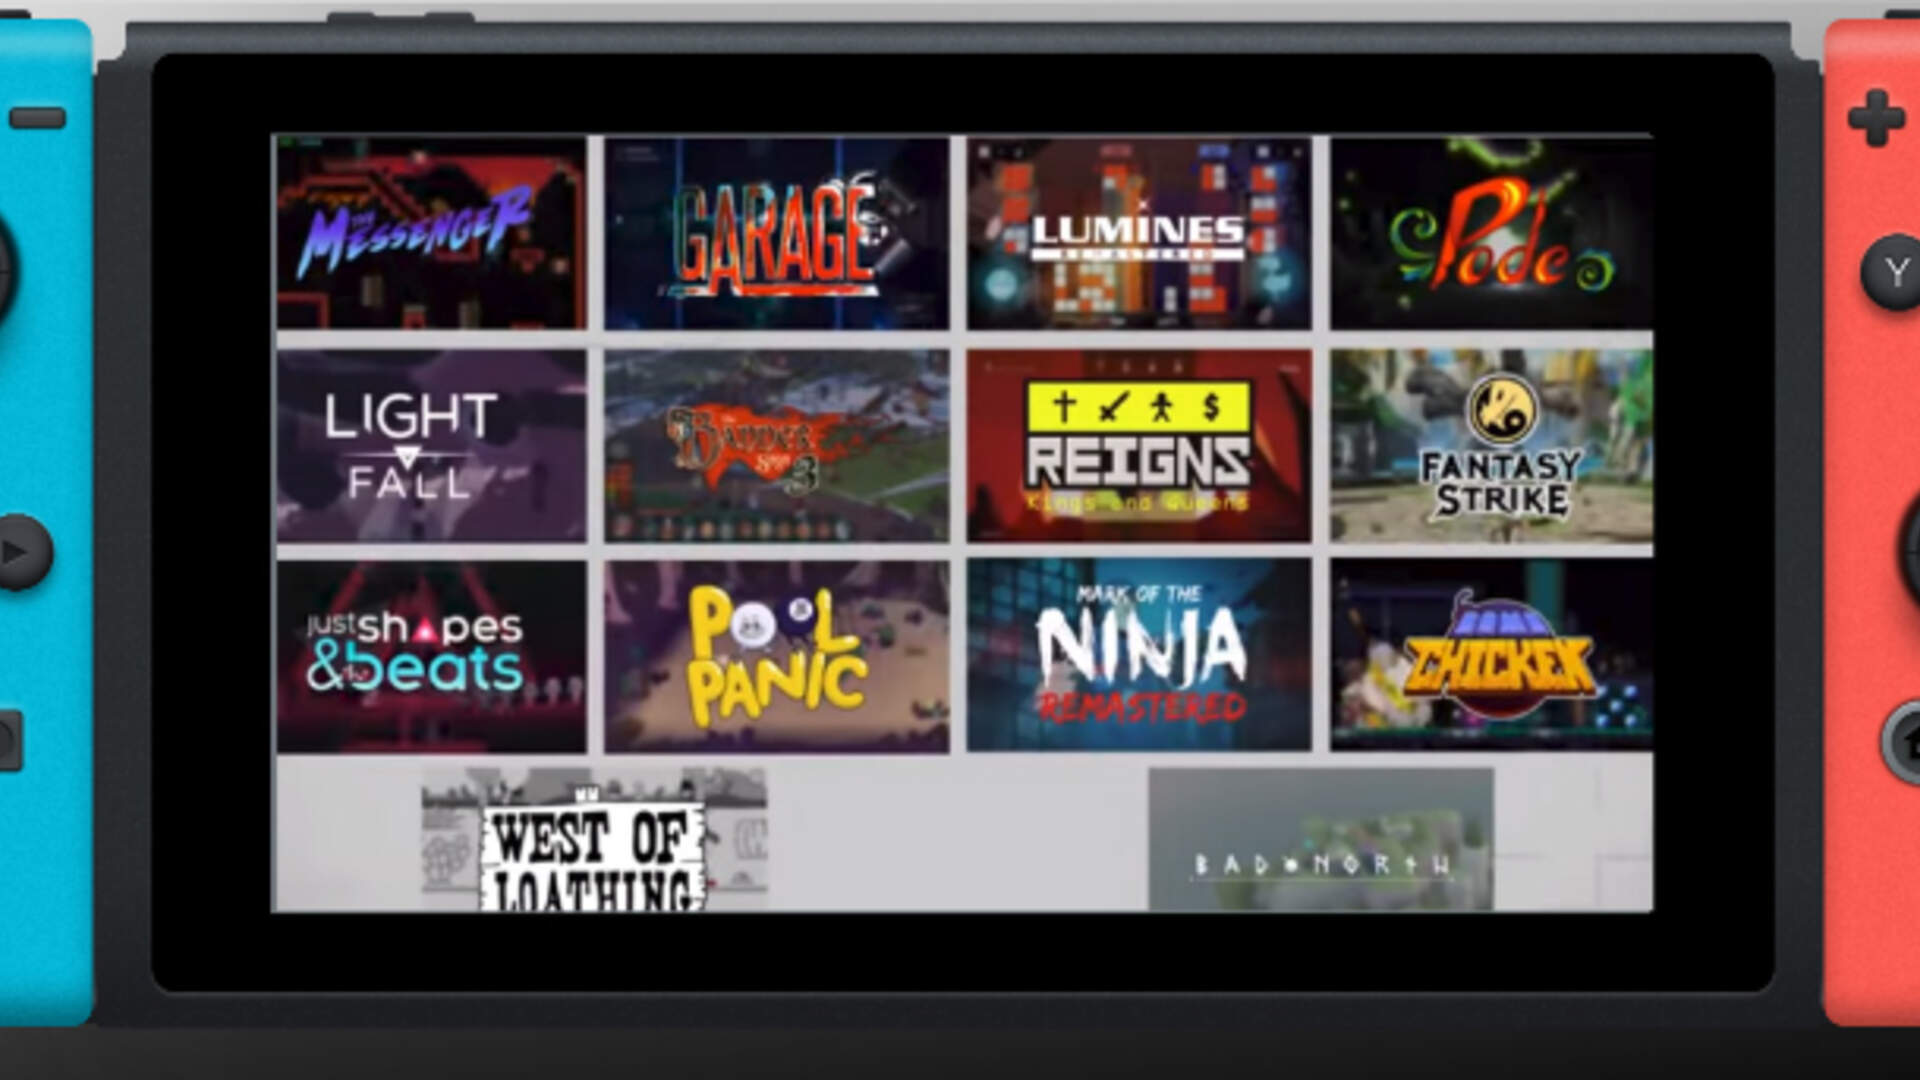 Hyper Light Drifter, Nidhogg 2, Bad North, and More Coming to Nintendo Switch